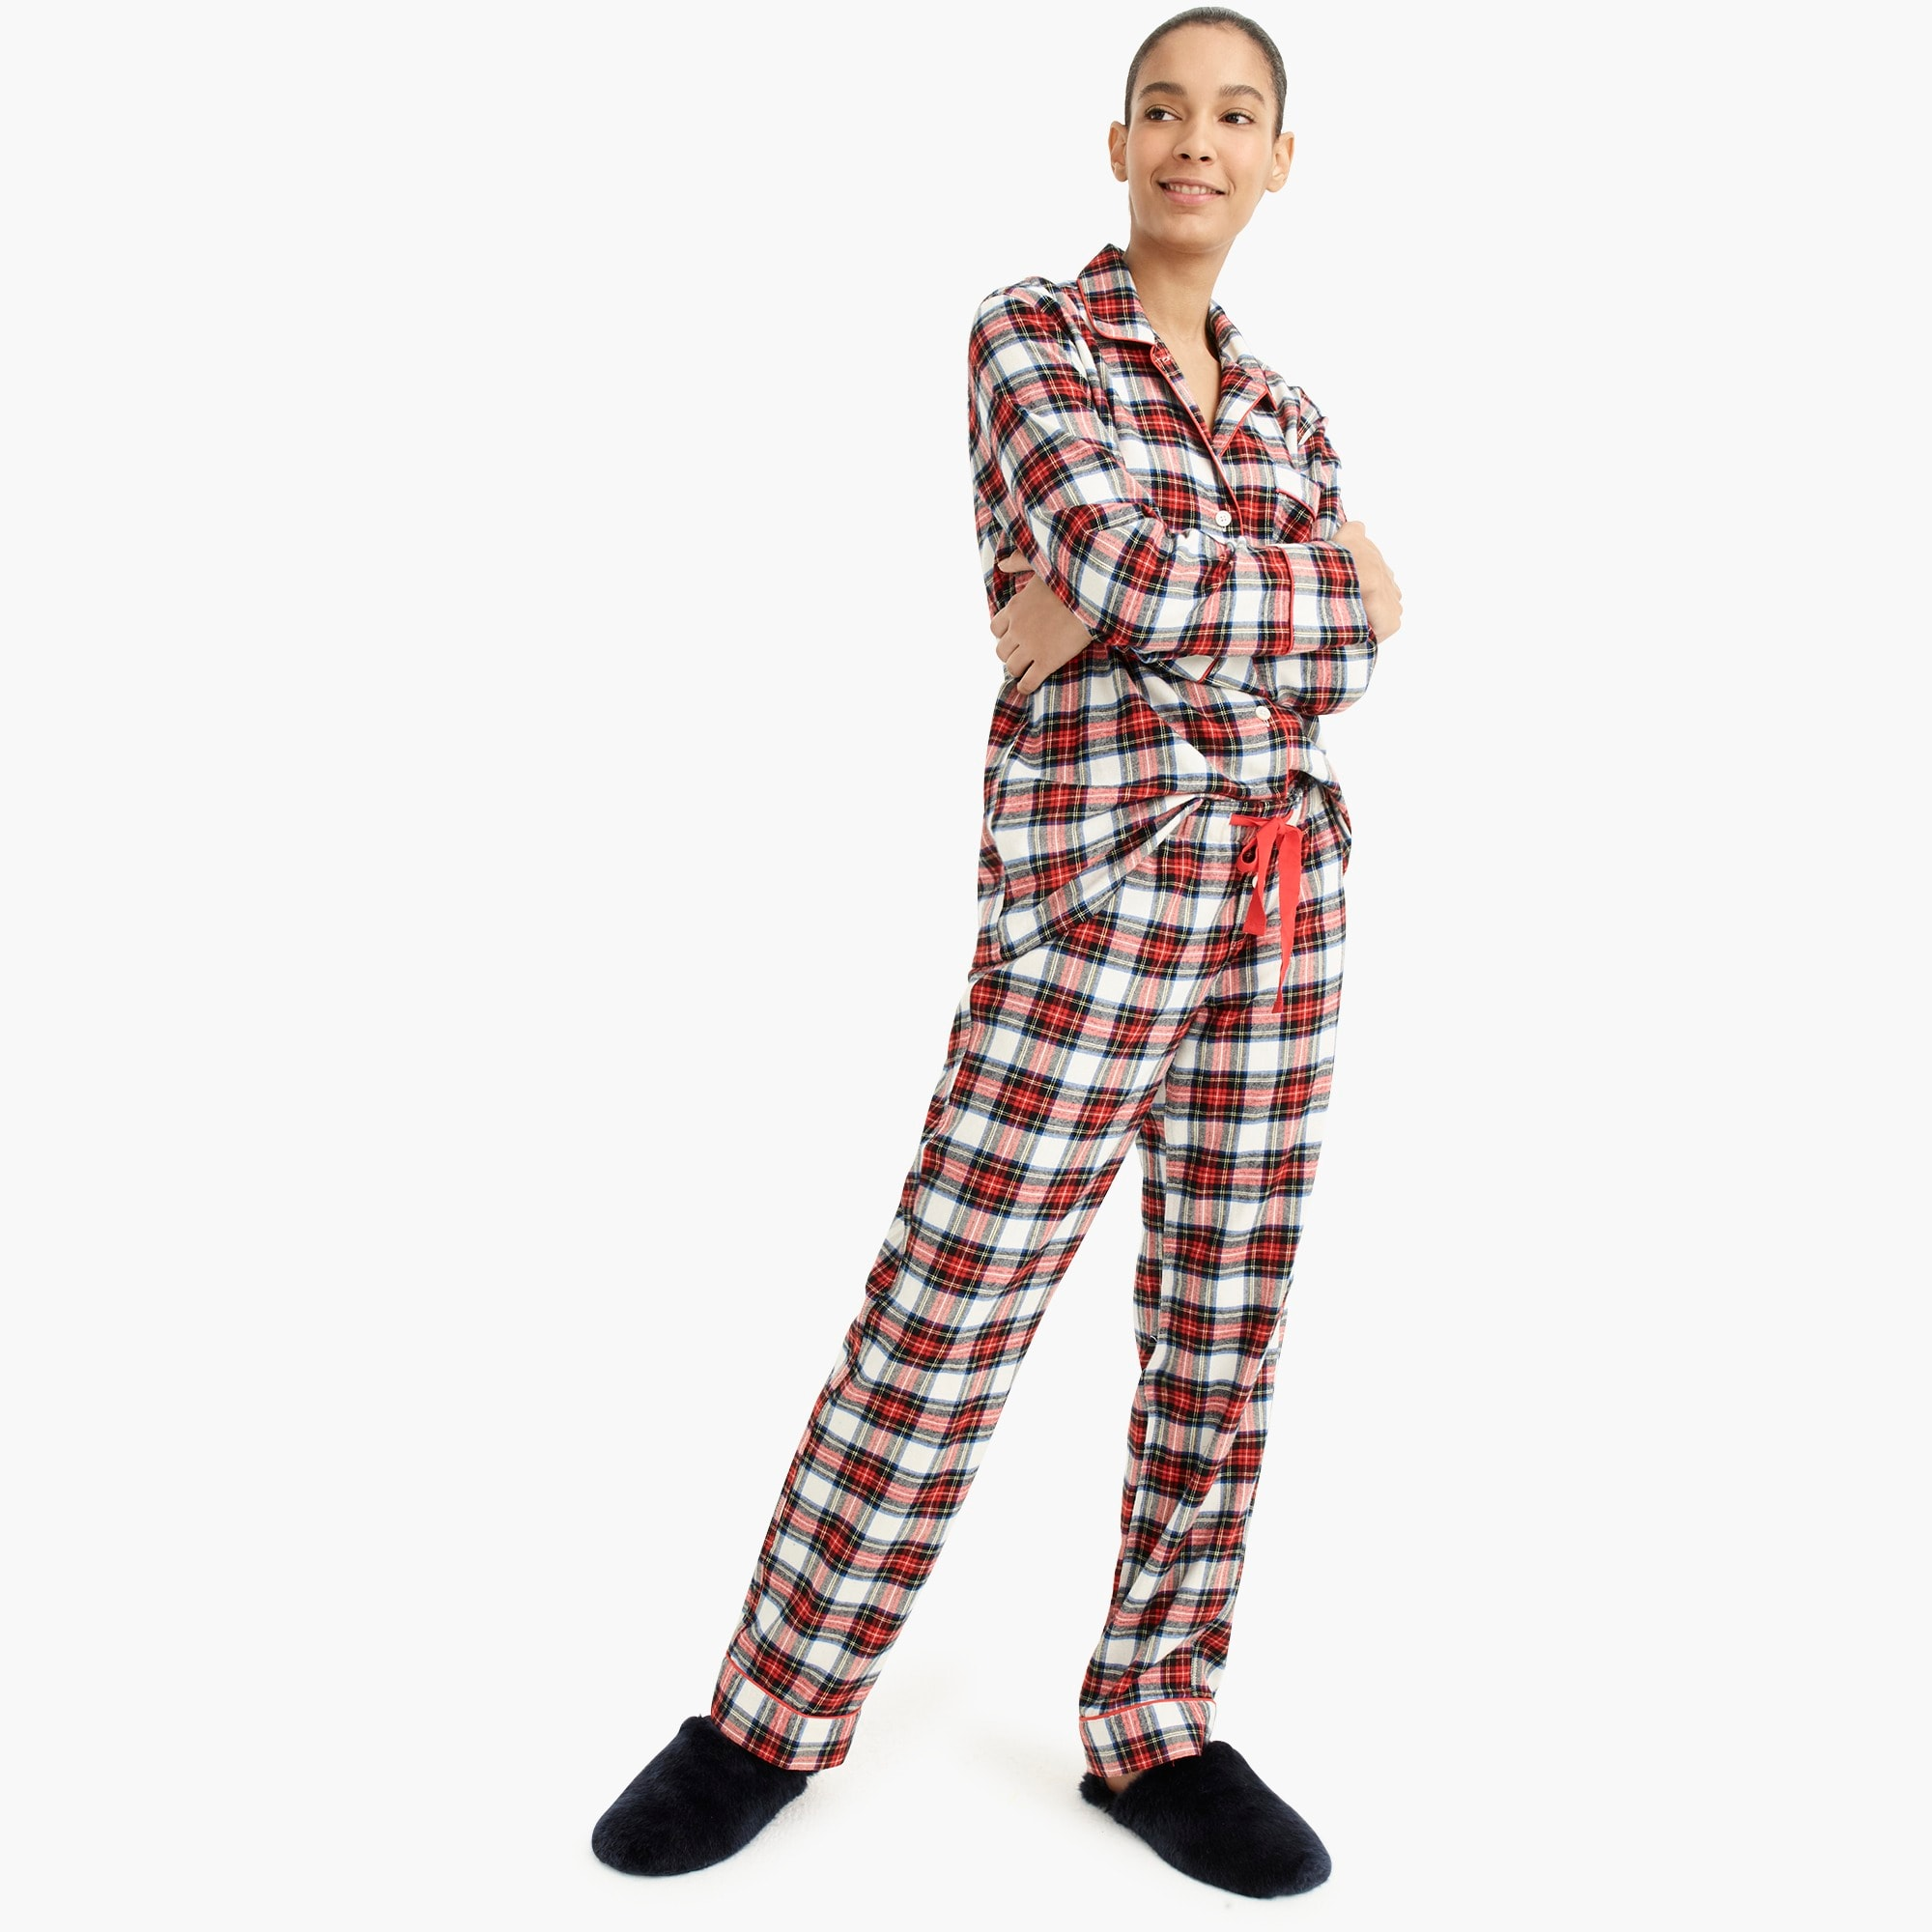 womens Flannel pajama set in white-out plaid